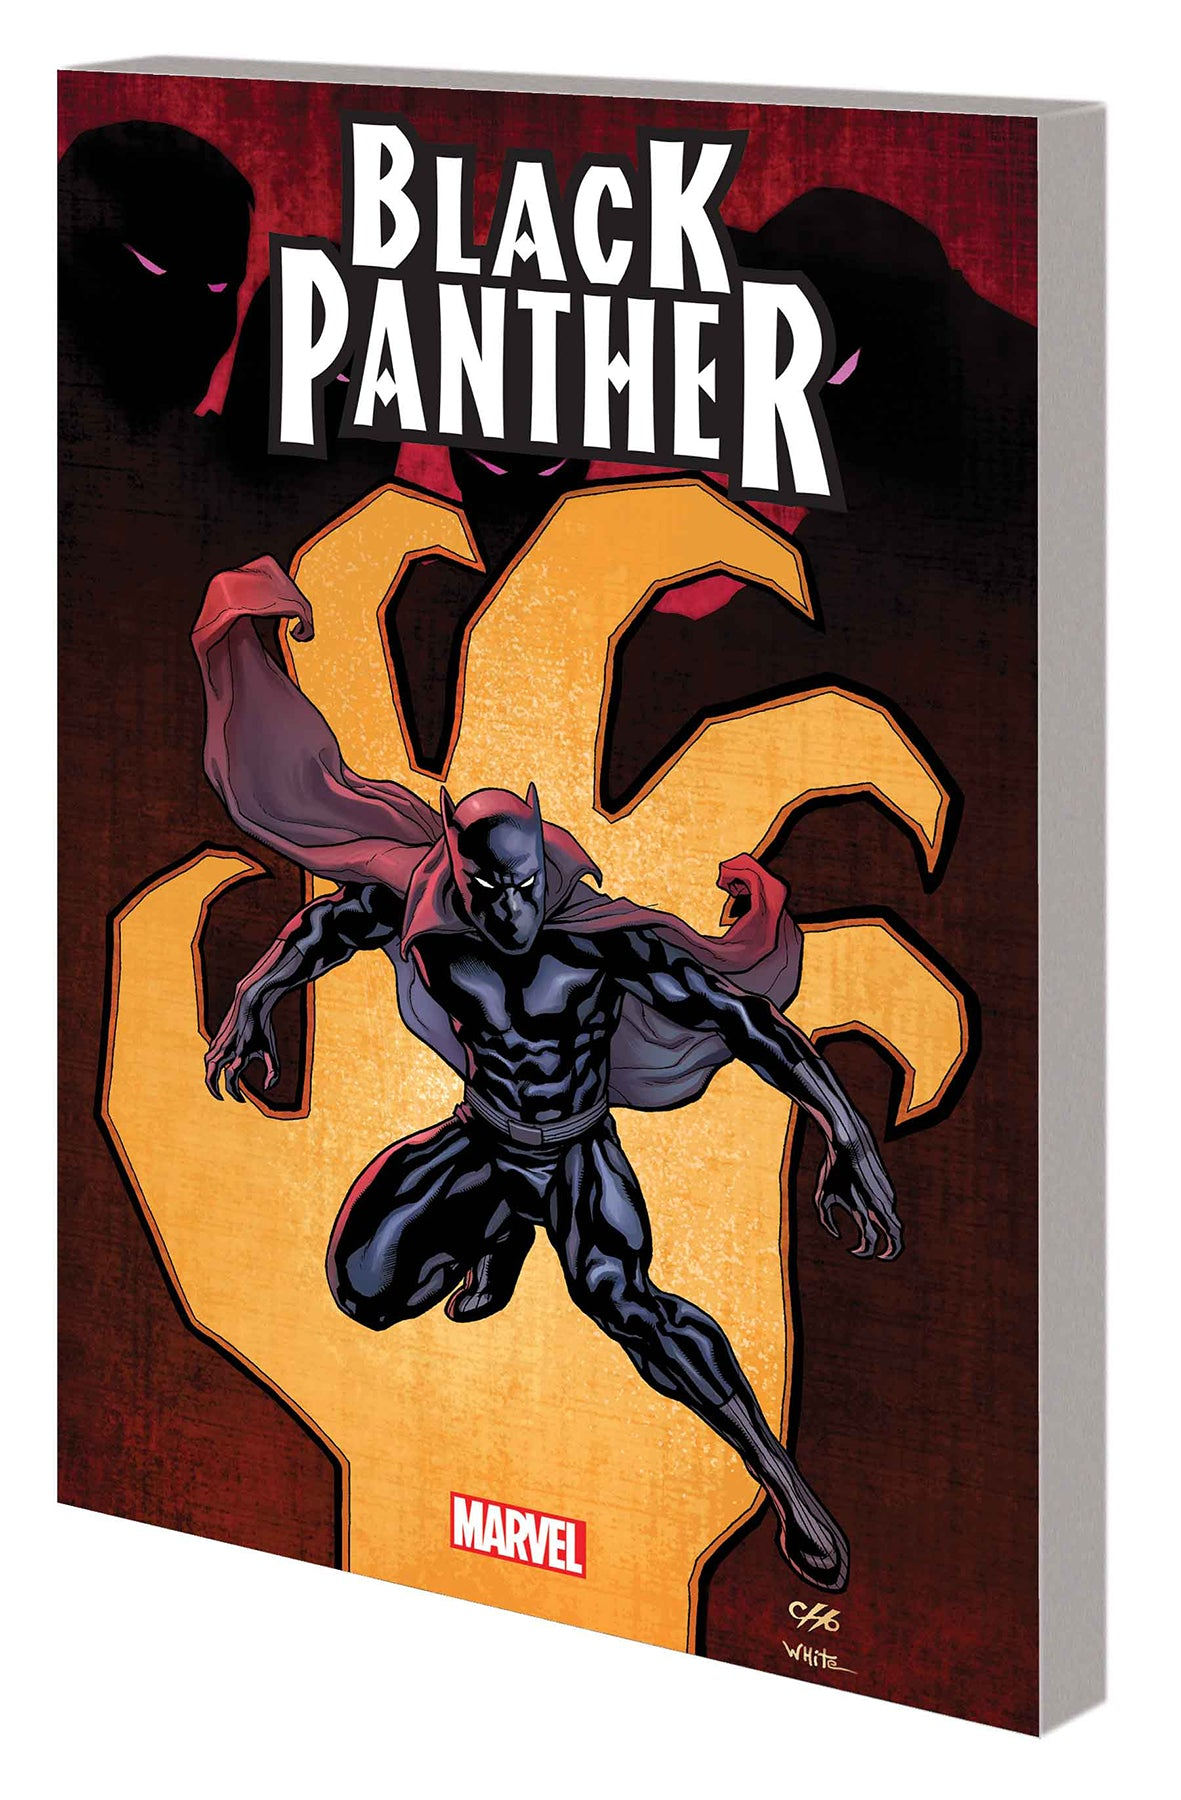 BLACK PANTHER BY HUDLIN TP VOL 01 COMPLETE COLLECTION